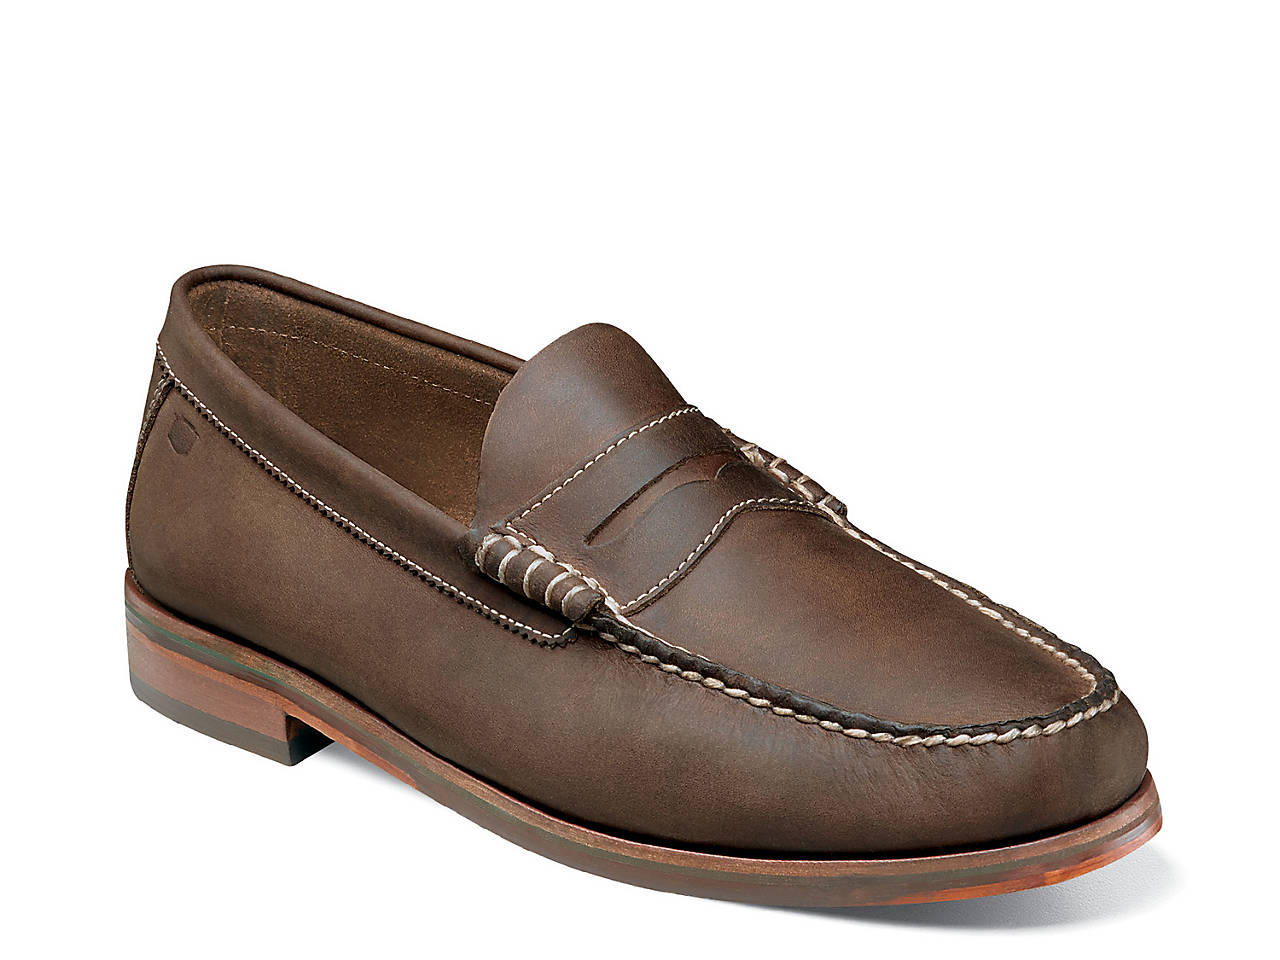 f341dbf588e Florsheim Heads Up Penny Loafer Men s Shoes